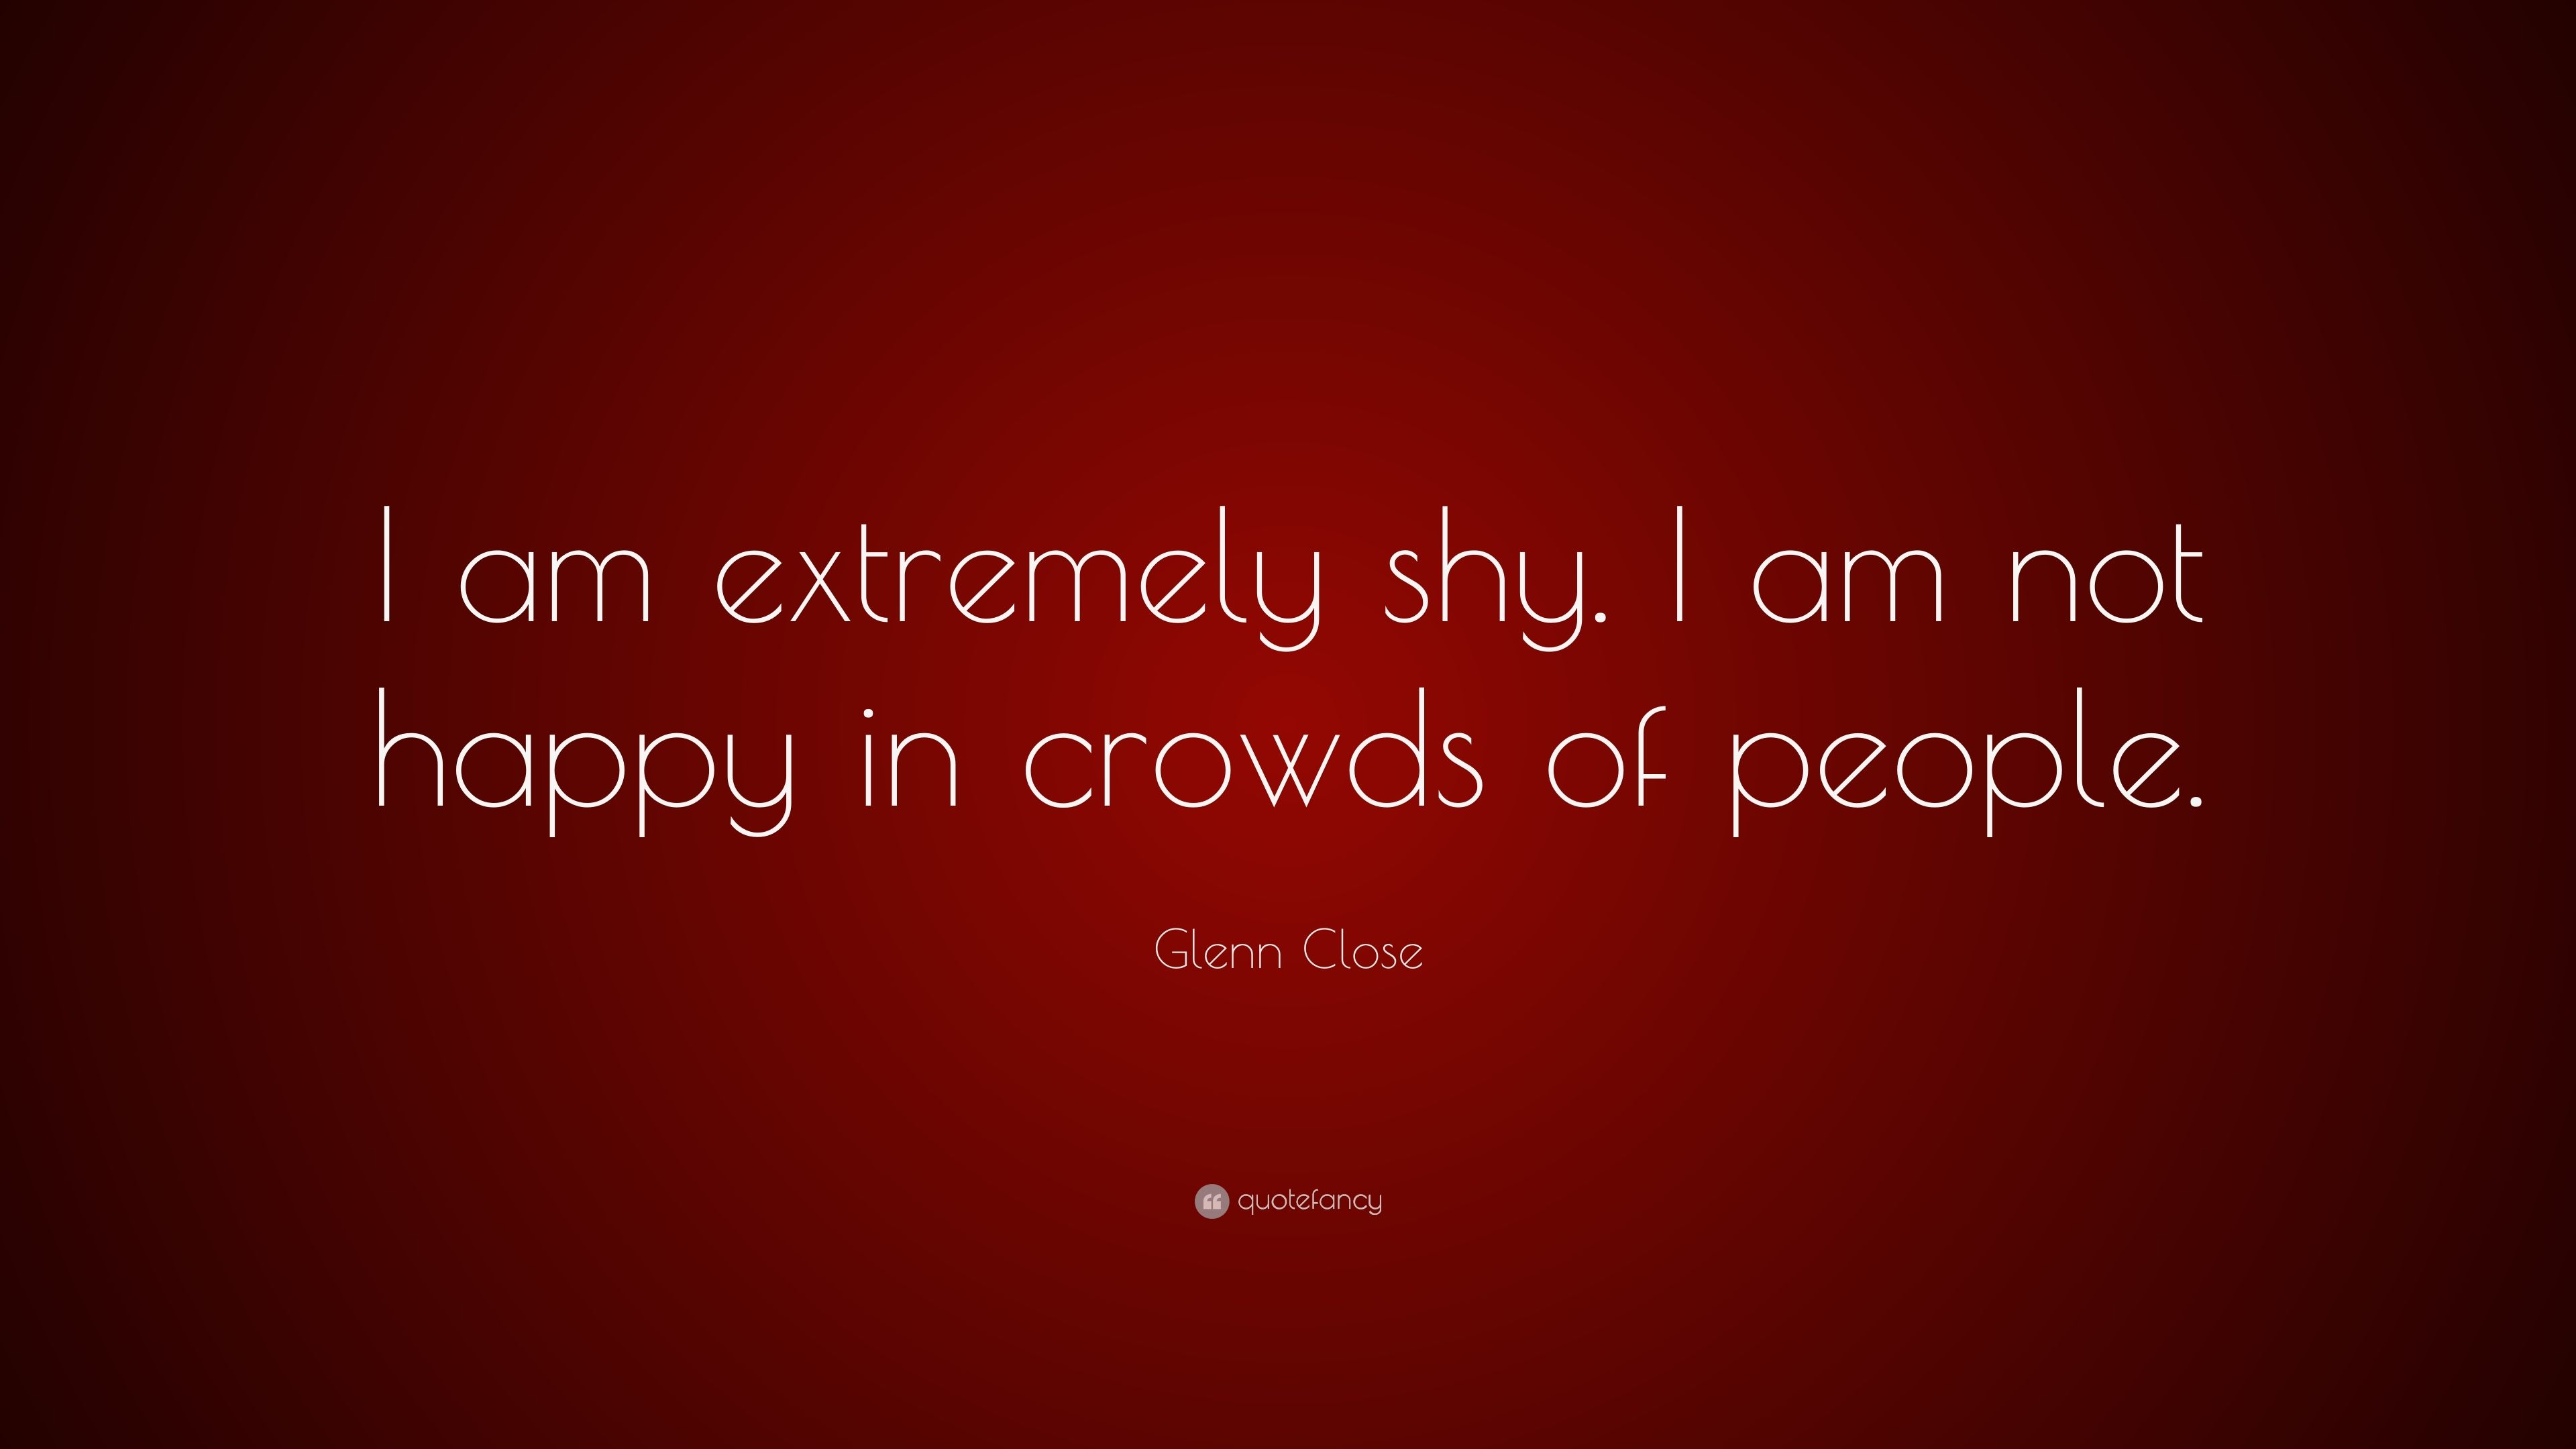 Glenn Close Quote: U201cI Am Extremely Shy. I Am Not Happy In Crowds